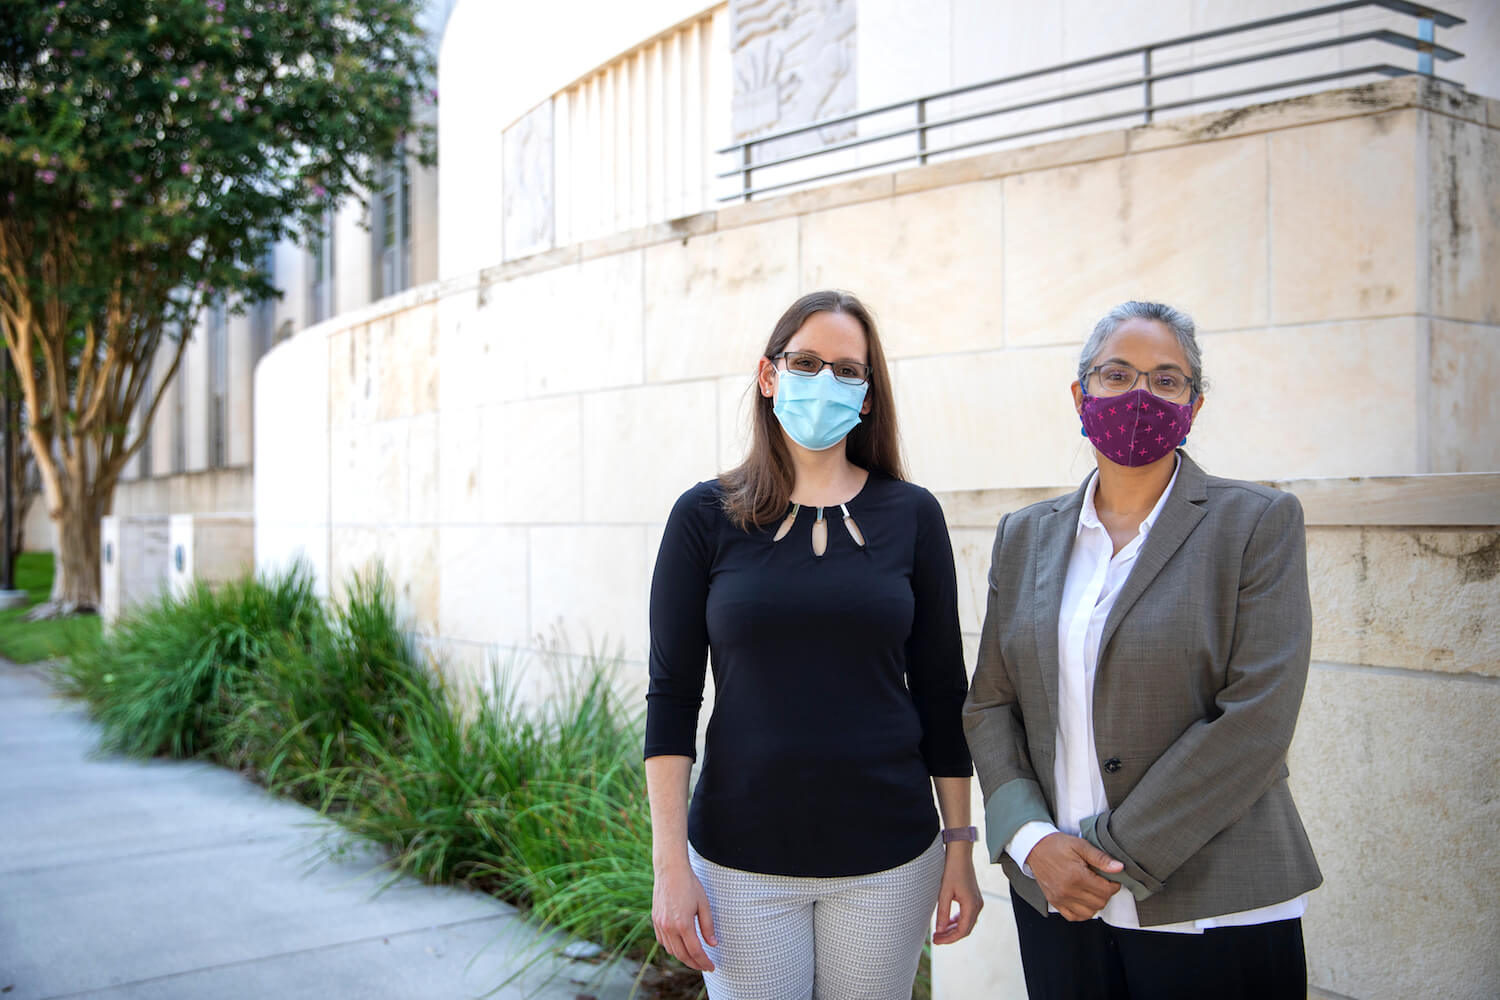 Medical ethicists Claire Horner, J.D., M.A., (left) and Savitri Fedson, M.D., M.A. outside Baylor College of Medicine.